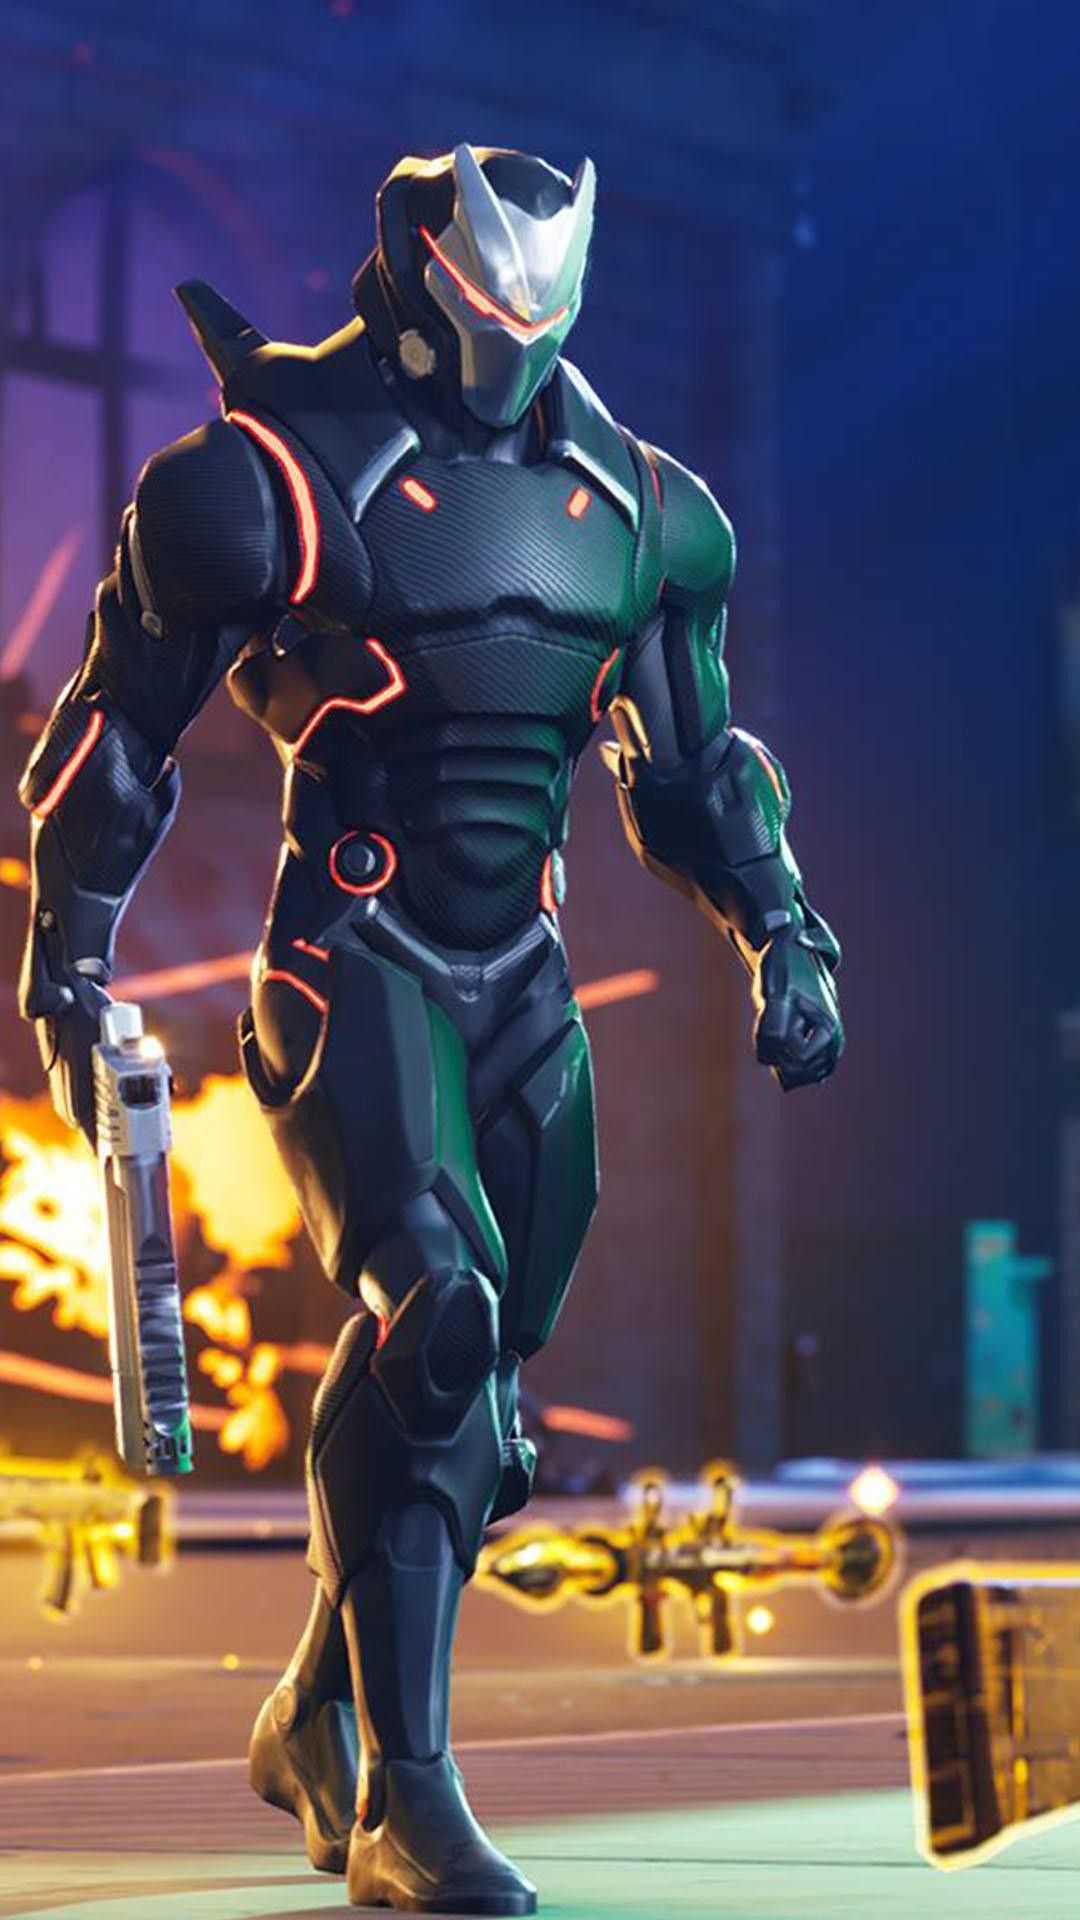 Fortnite all night Game wallpaper iphone, Fortnite